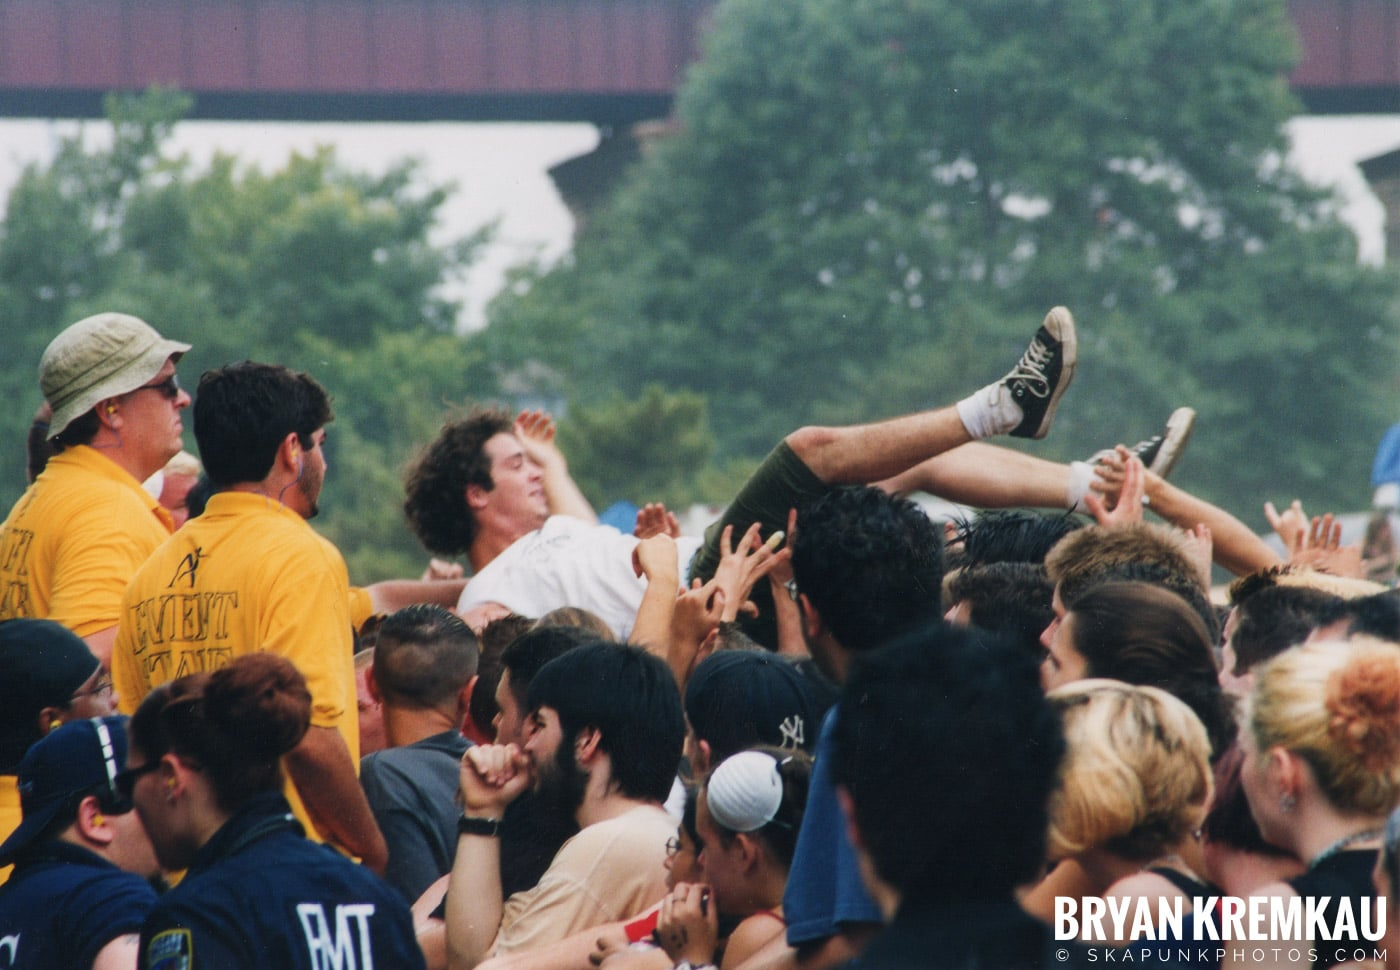 Crowd Shots @ Vans Warped Tour, Randall's Island, NYC - 8.4.01 (7)